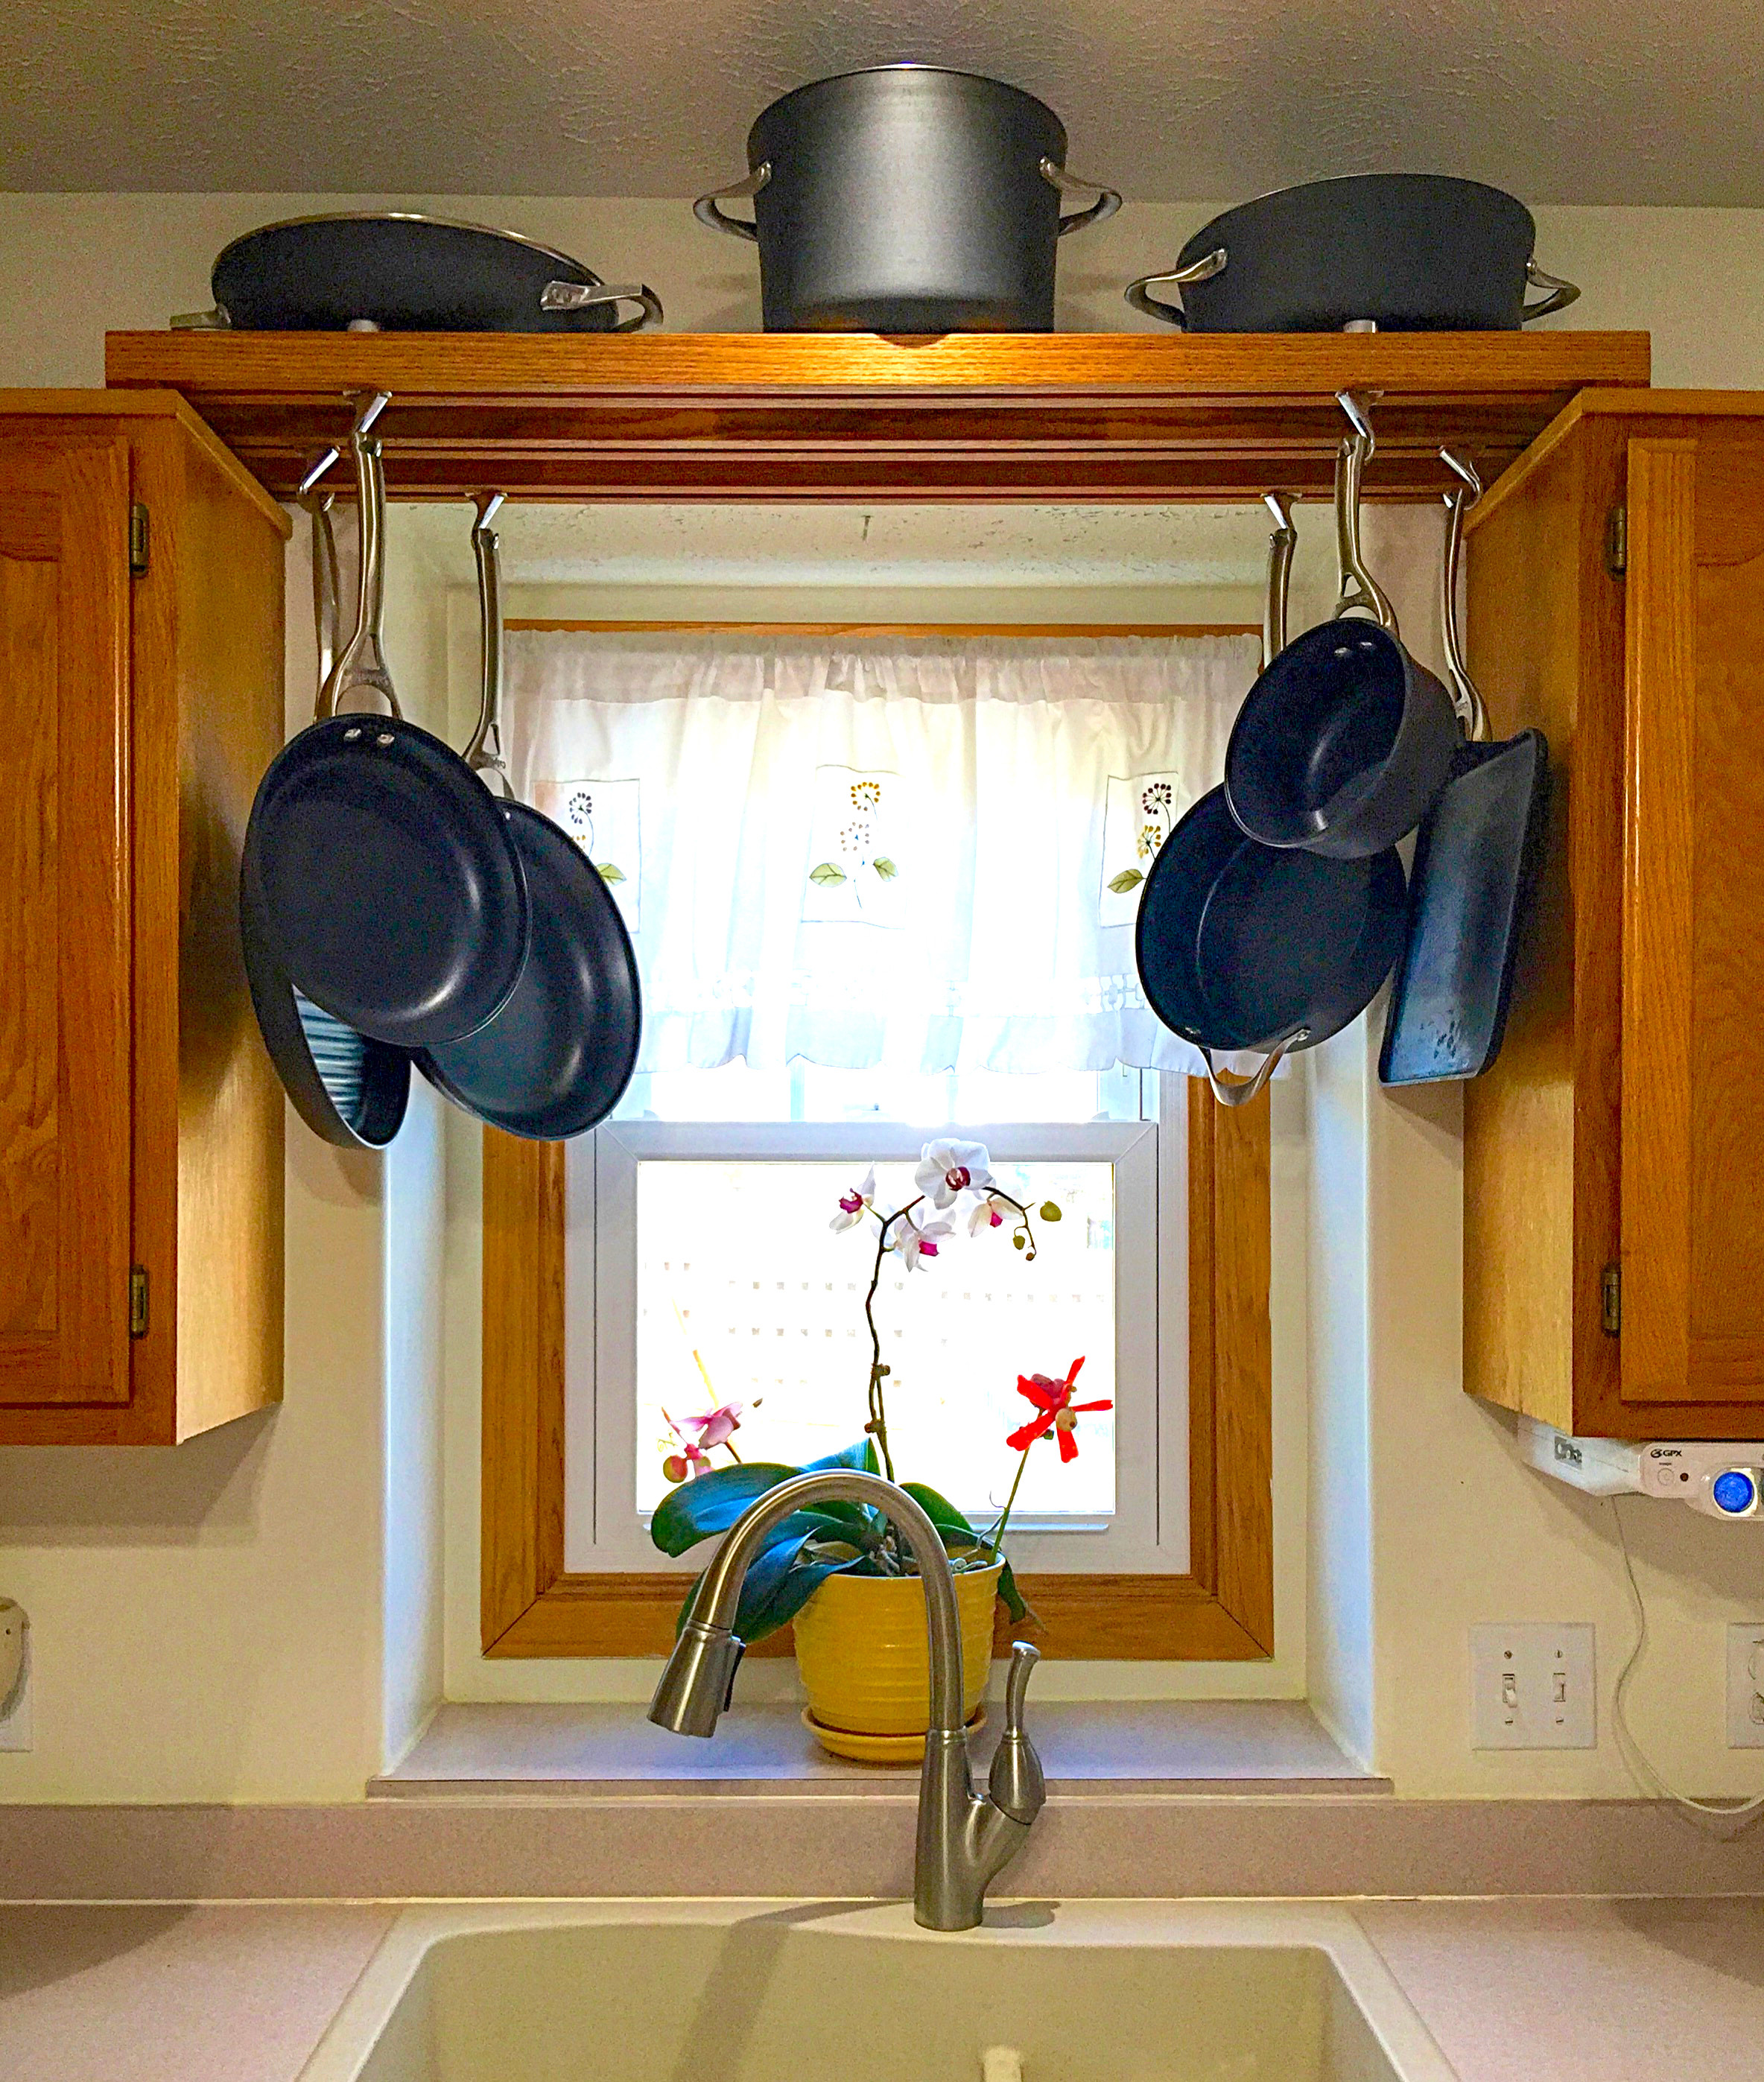 Best ideas about DIY Pot Rack . Save or Pin Make use of space over the kitchen sink with this DIY pot Now.